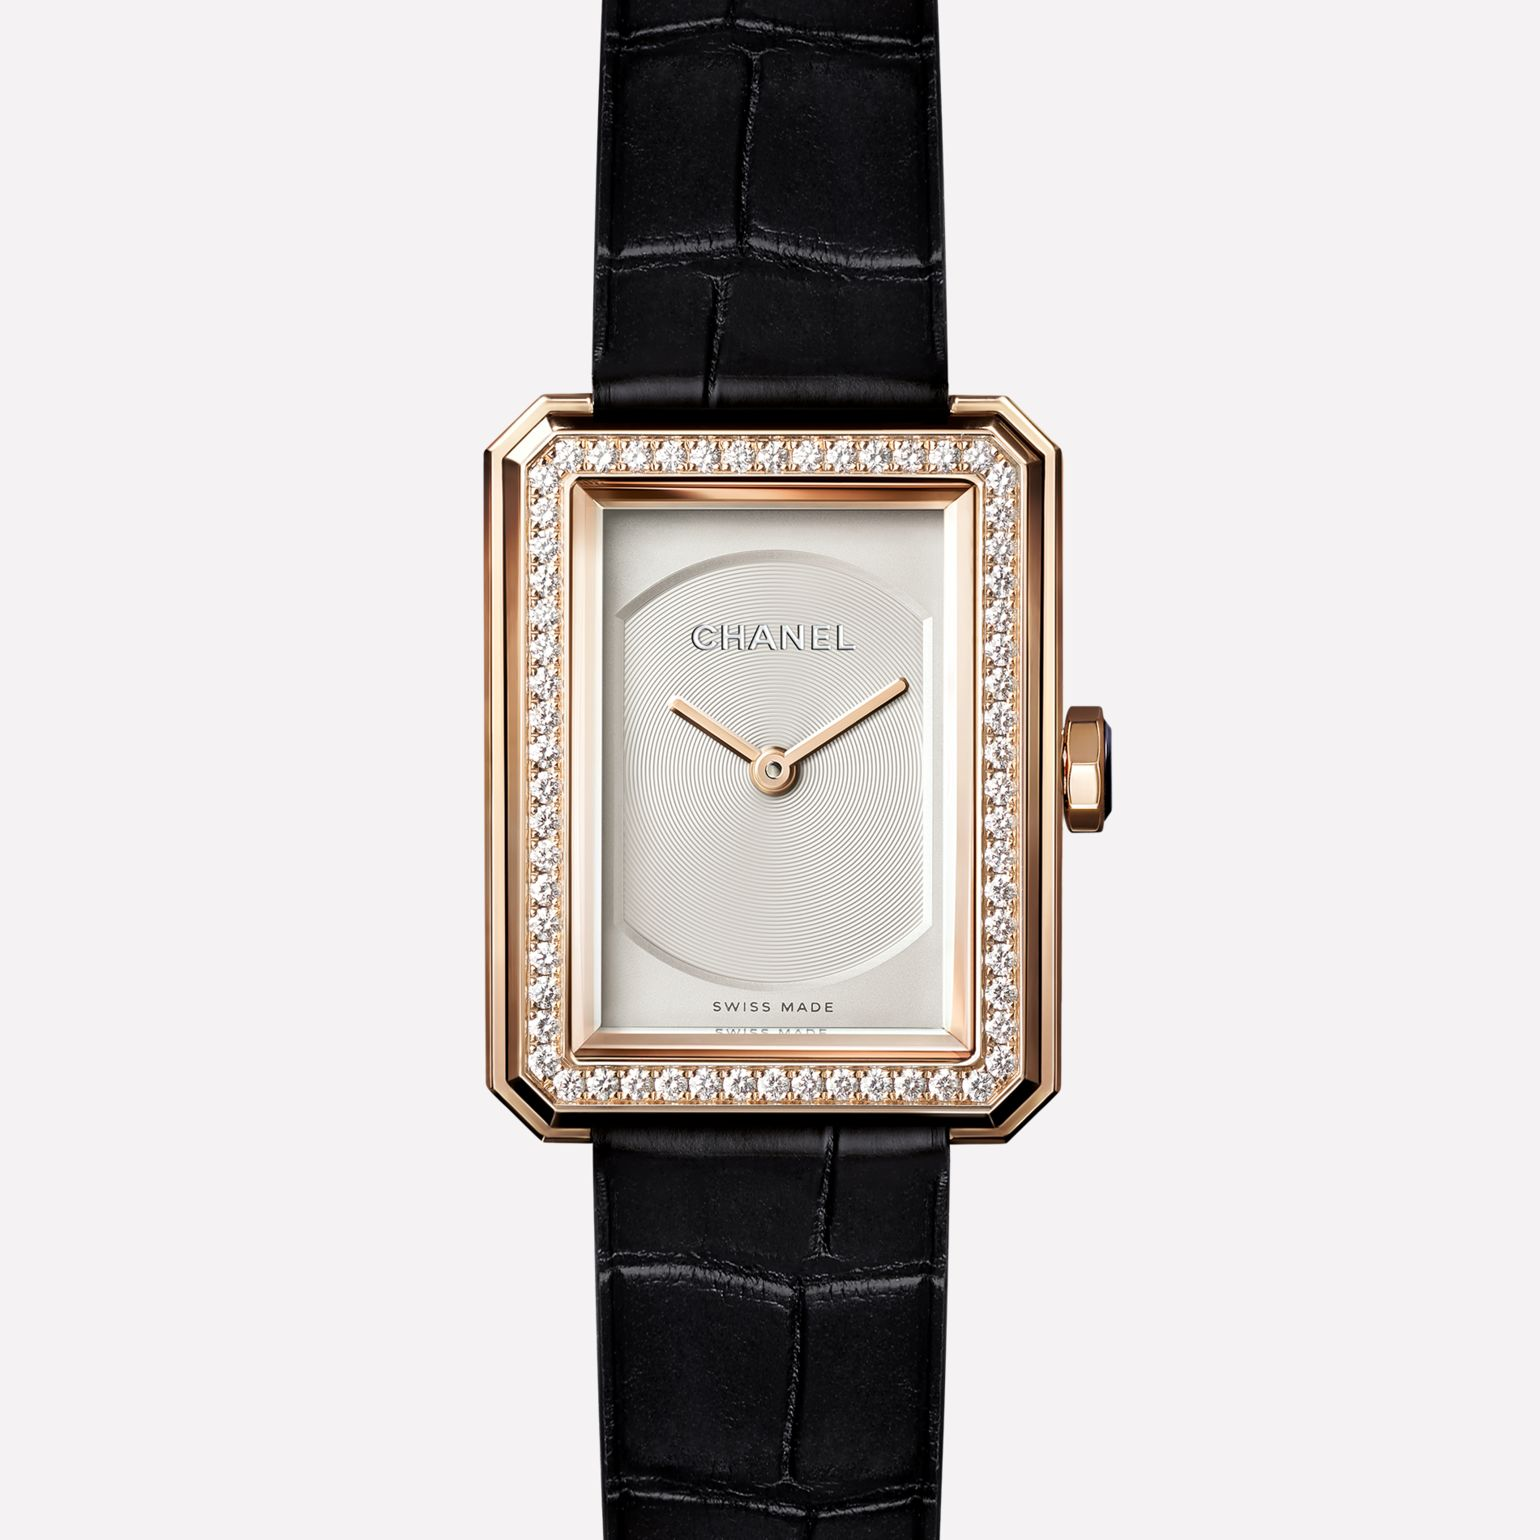 PREMIÈRE·BOY Small version, BEIGE GOLD set with diamonds and alligator strap